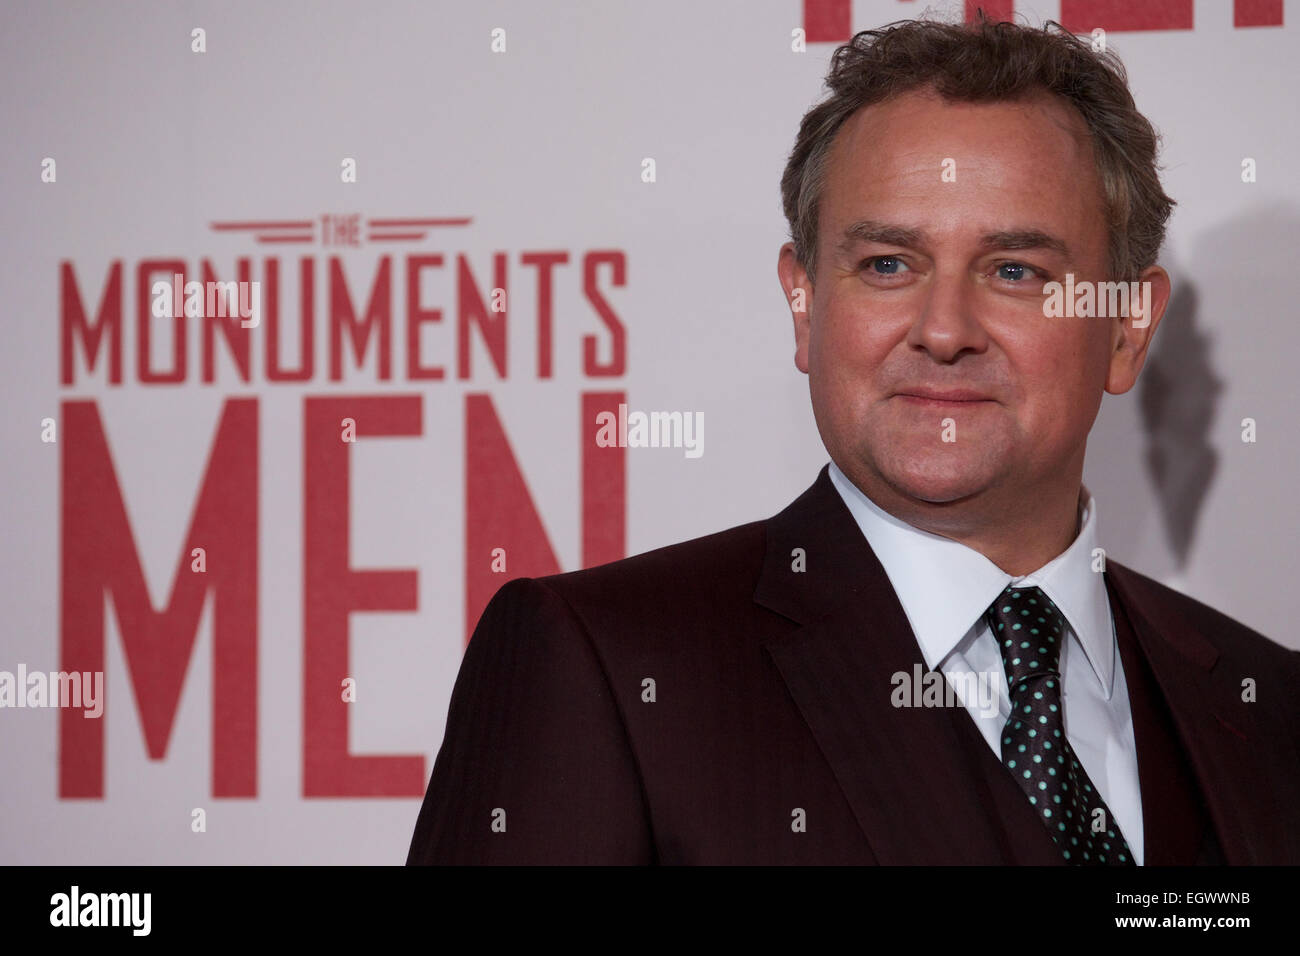 UNITED KINGDOM, London : British actor Hugh Bonneville poses on the red carpet as he arrives for the UK premiere - Stock Image